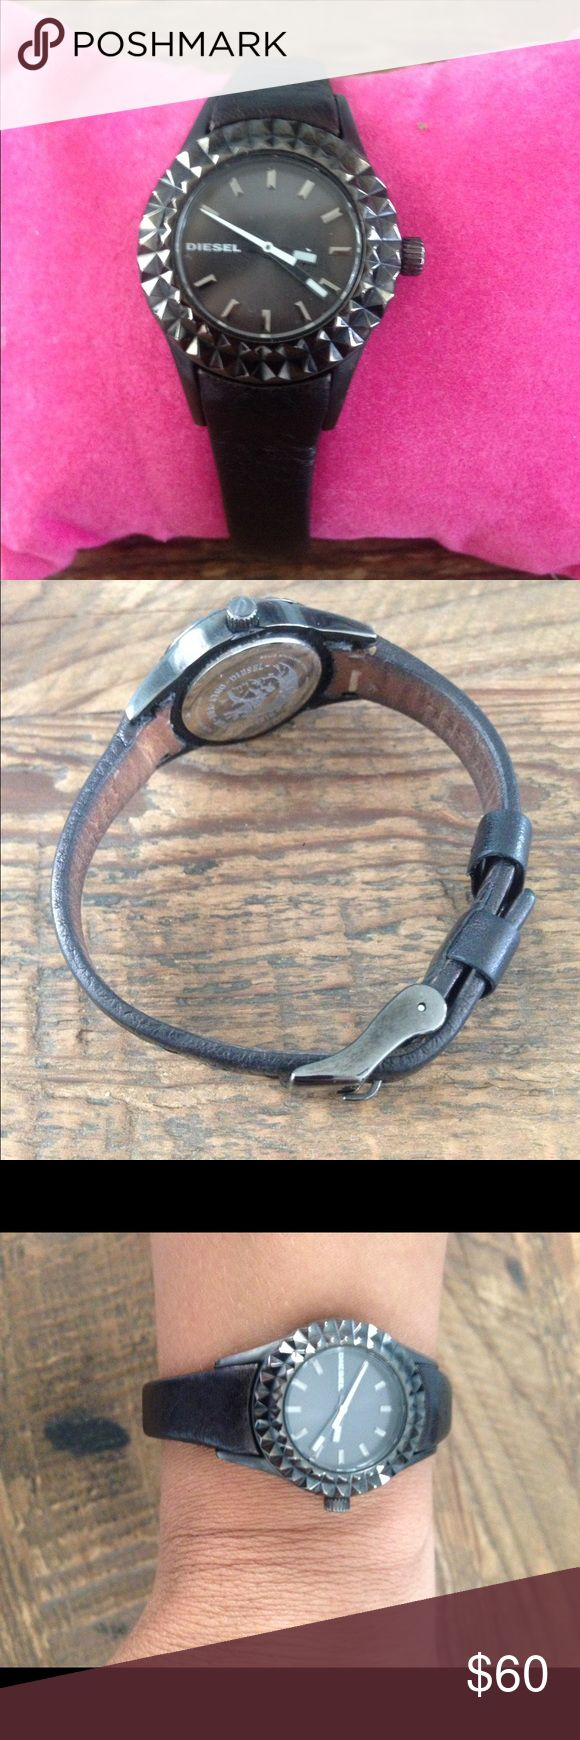 Diesel Watch Great condition, works like a charm! Diesel Accessories Watches